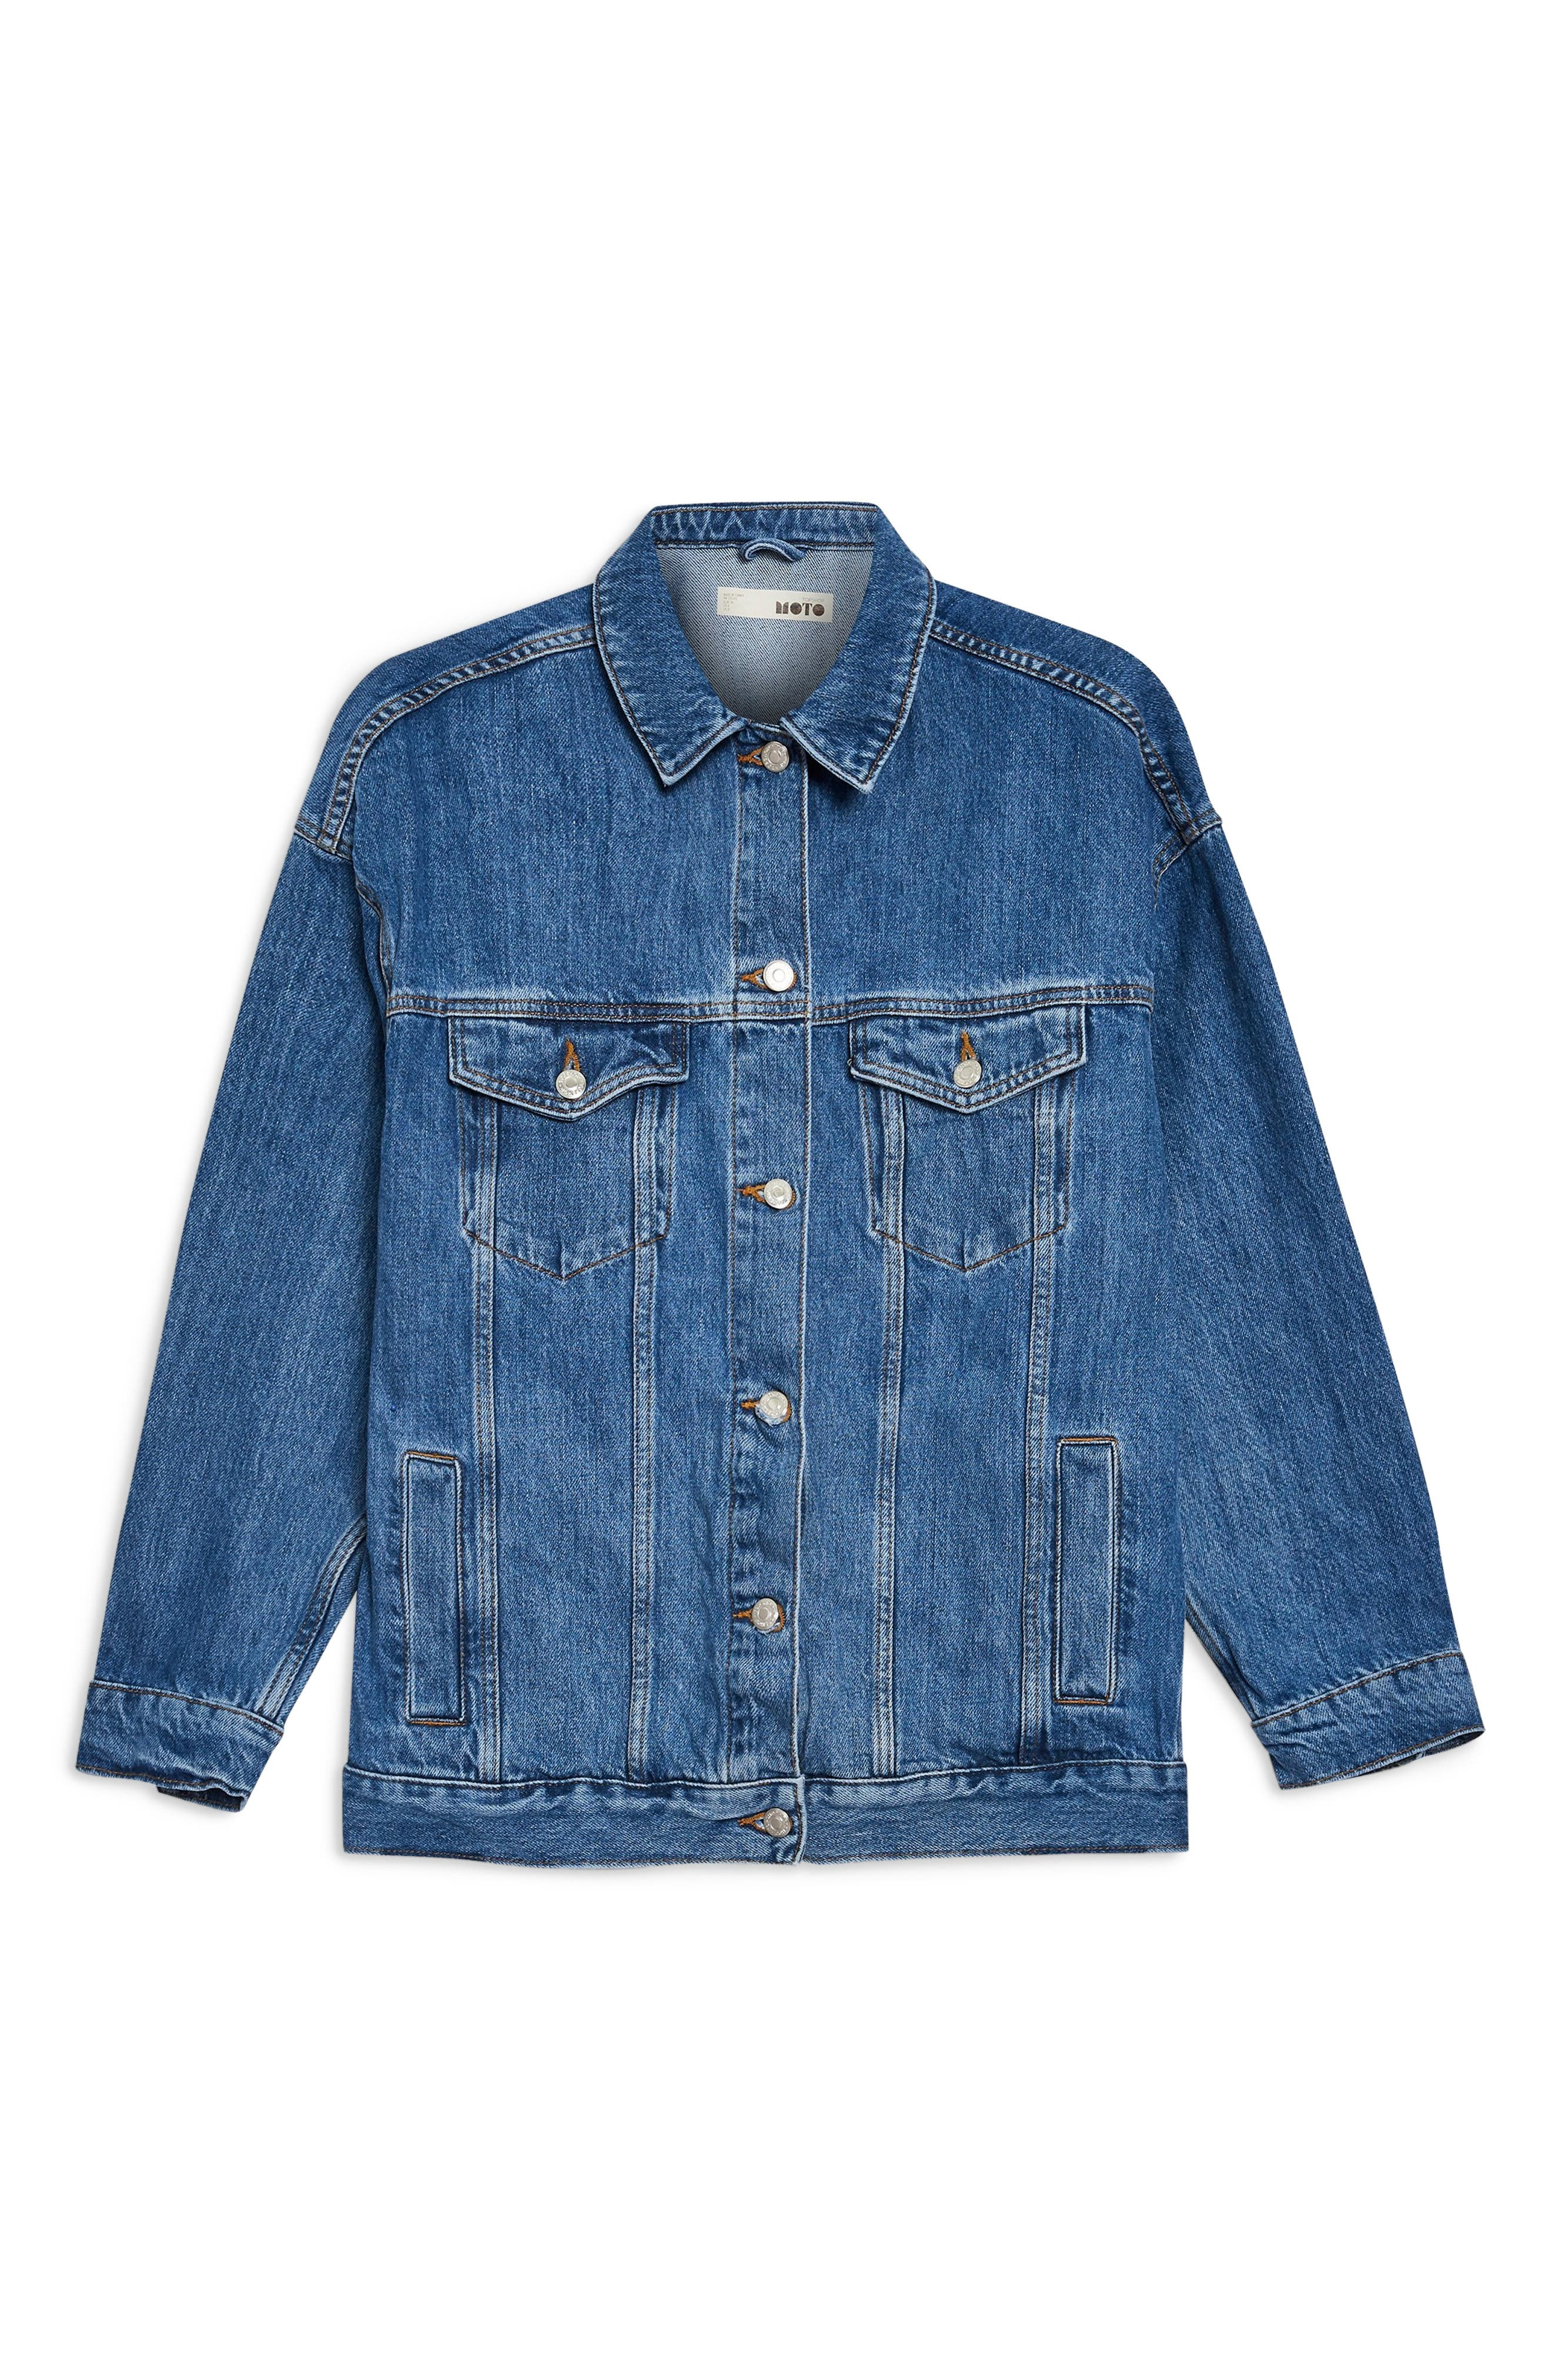 Oversized Denim Jacket,                             Alternate thumbnail 4, color,                             MID DENIM